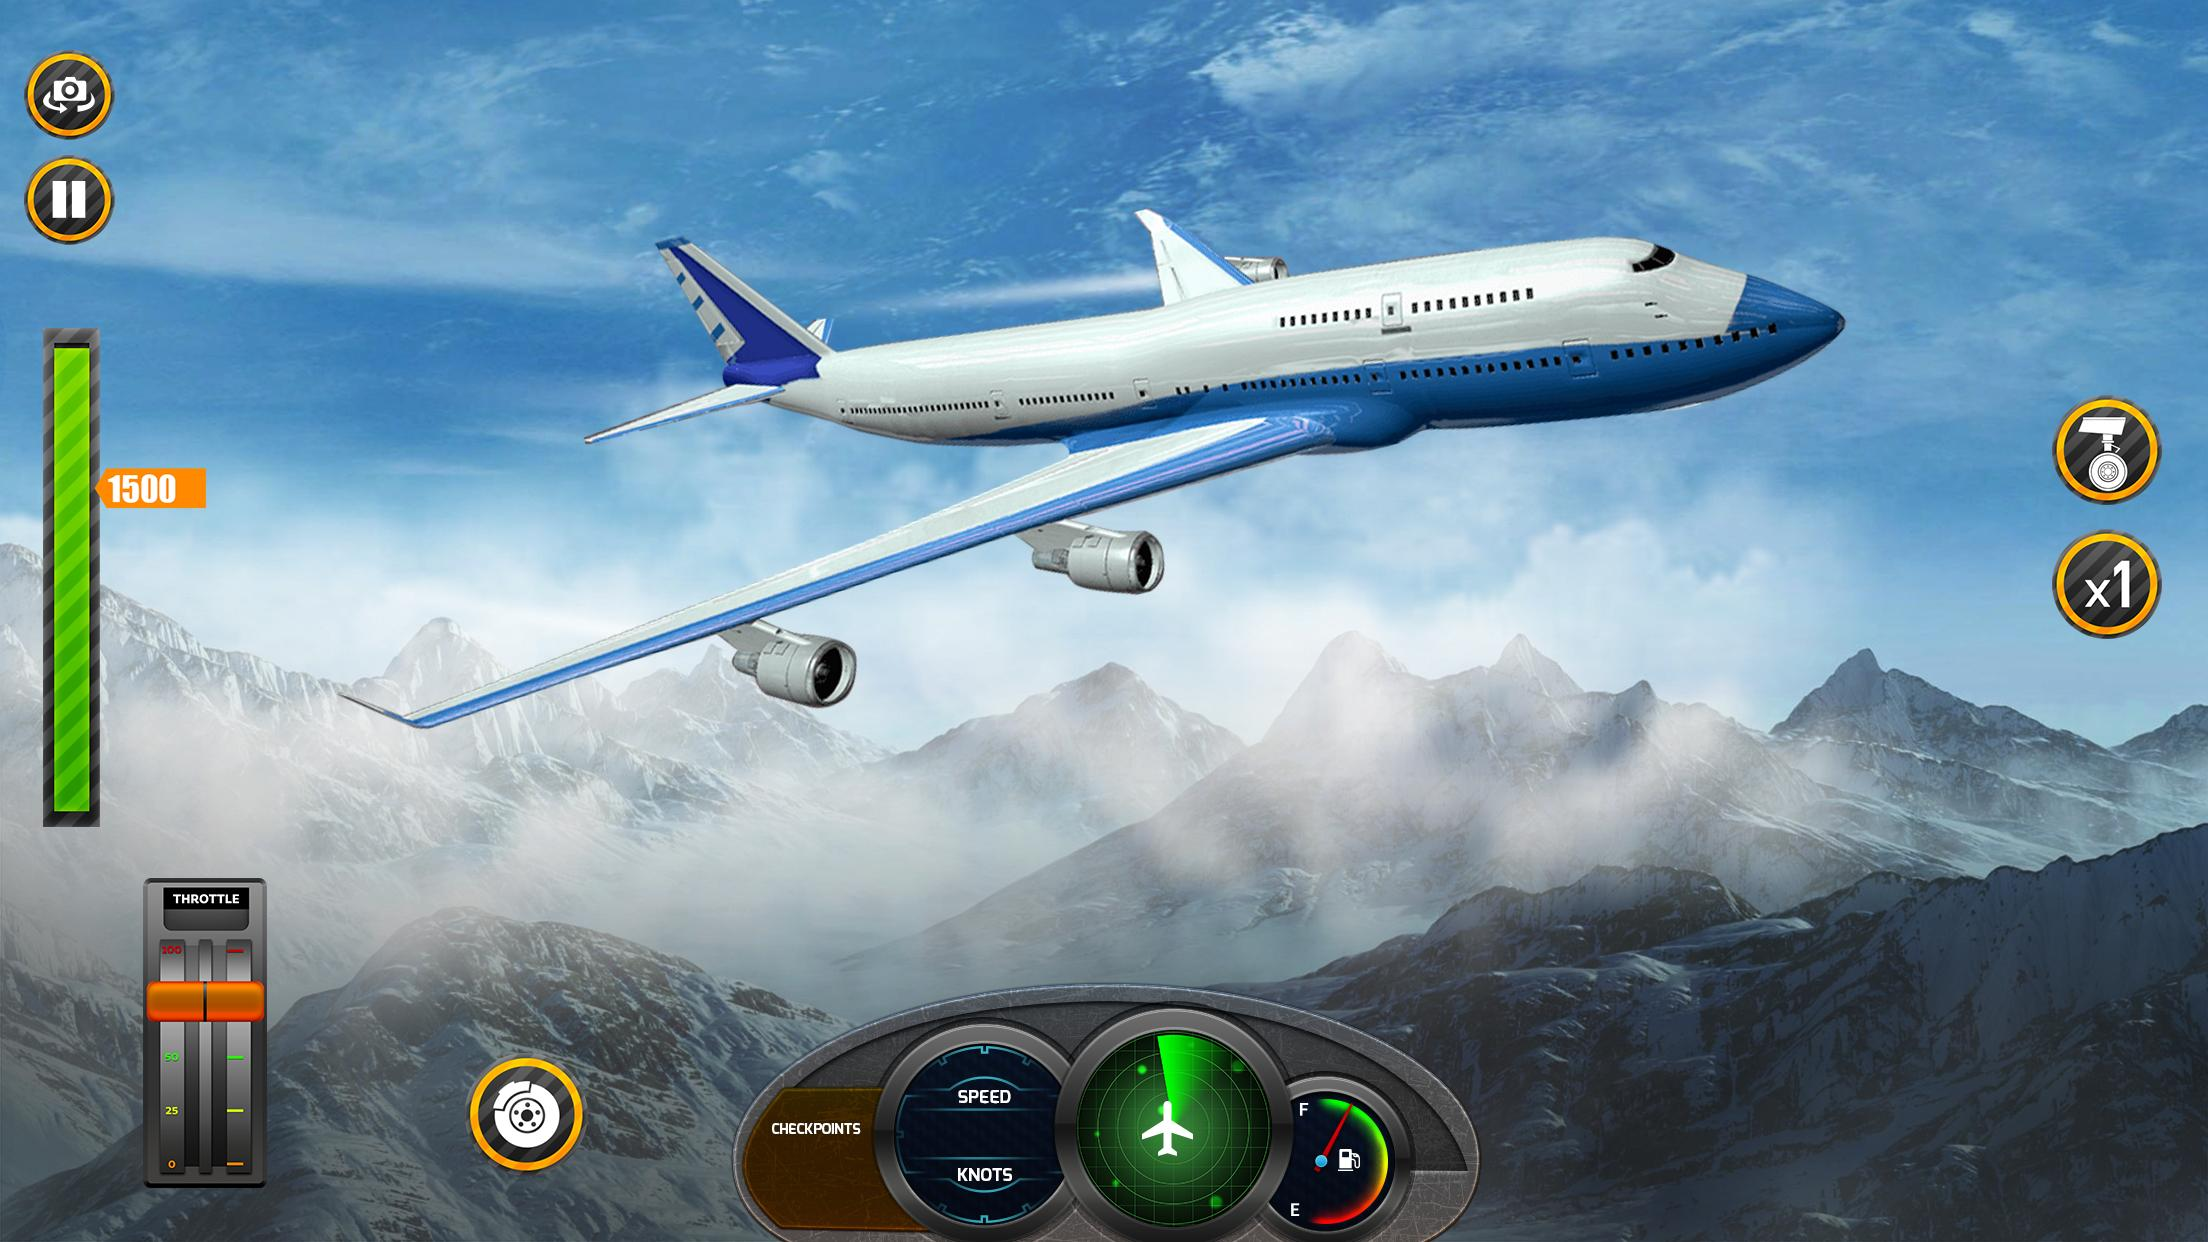 Airplane Real Flight Simulator 2020 Plane Games 5.4 Screenshot 10